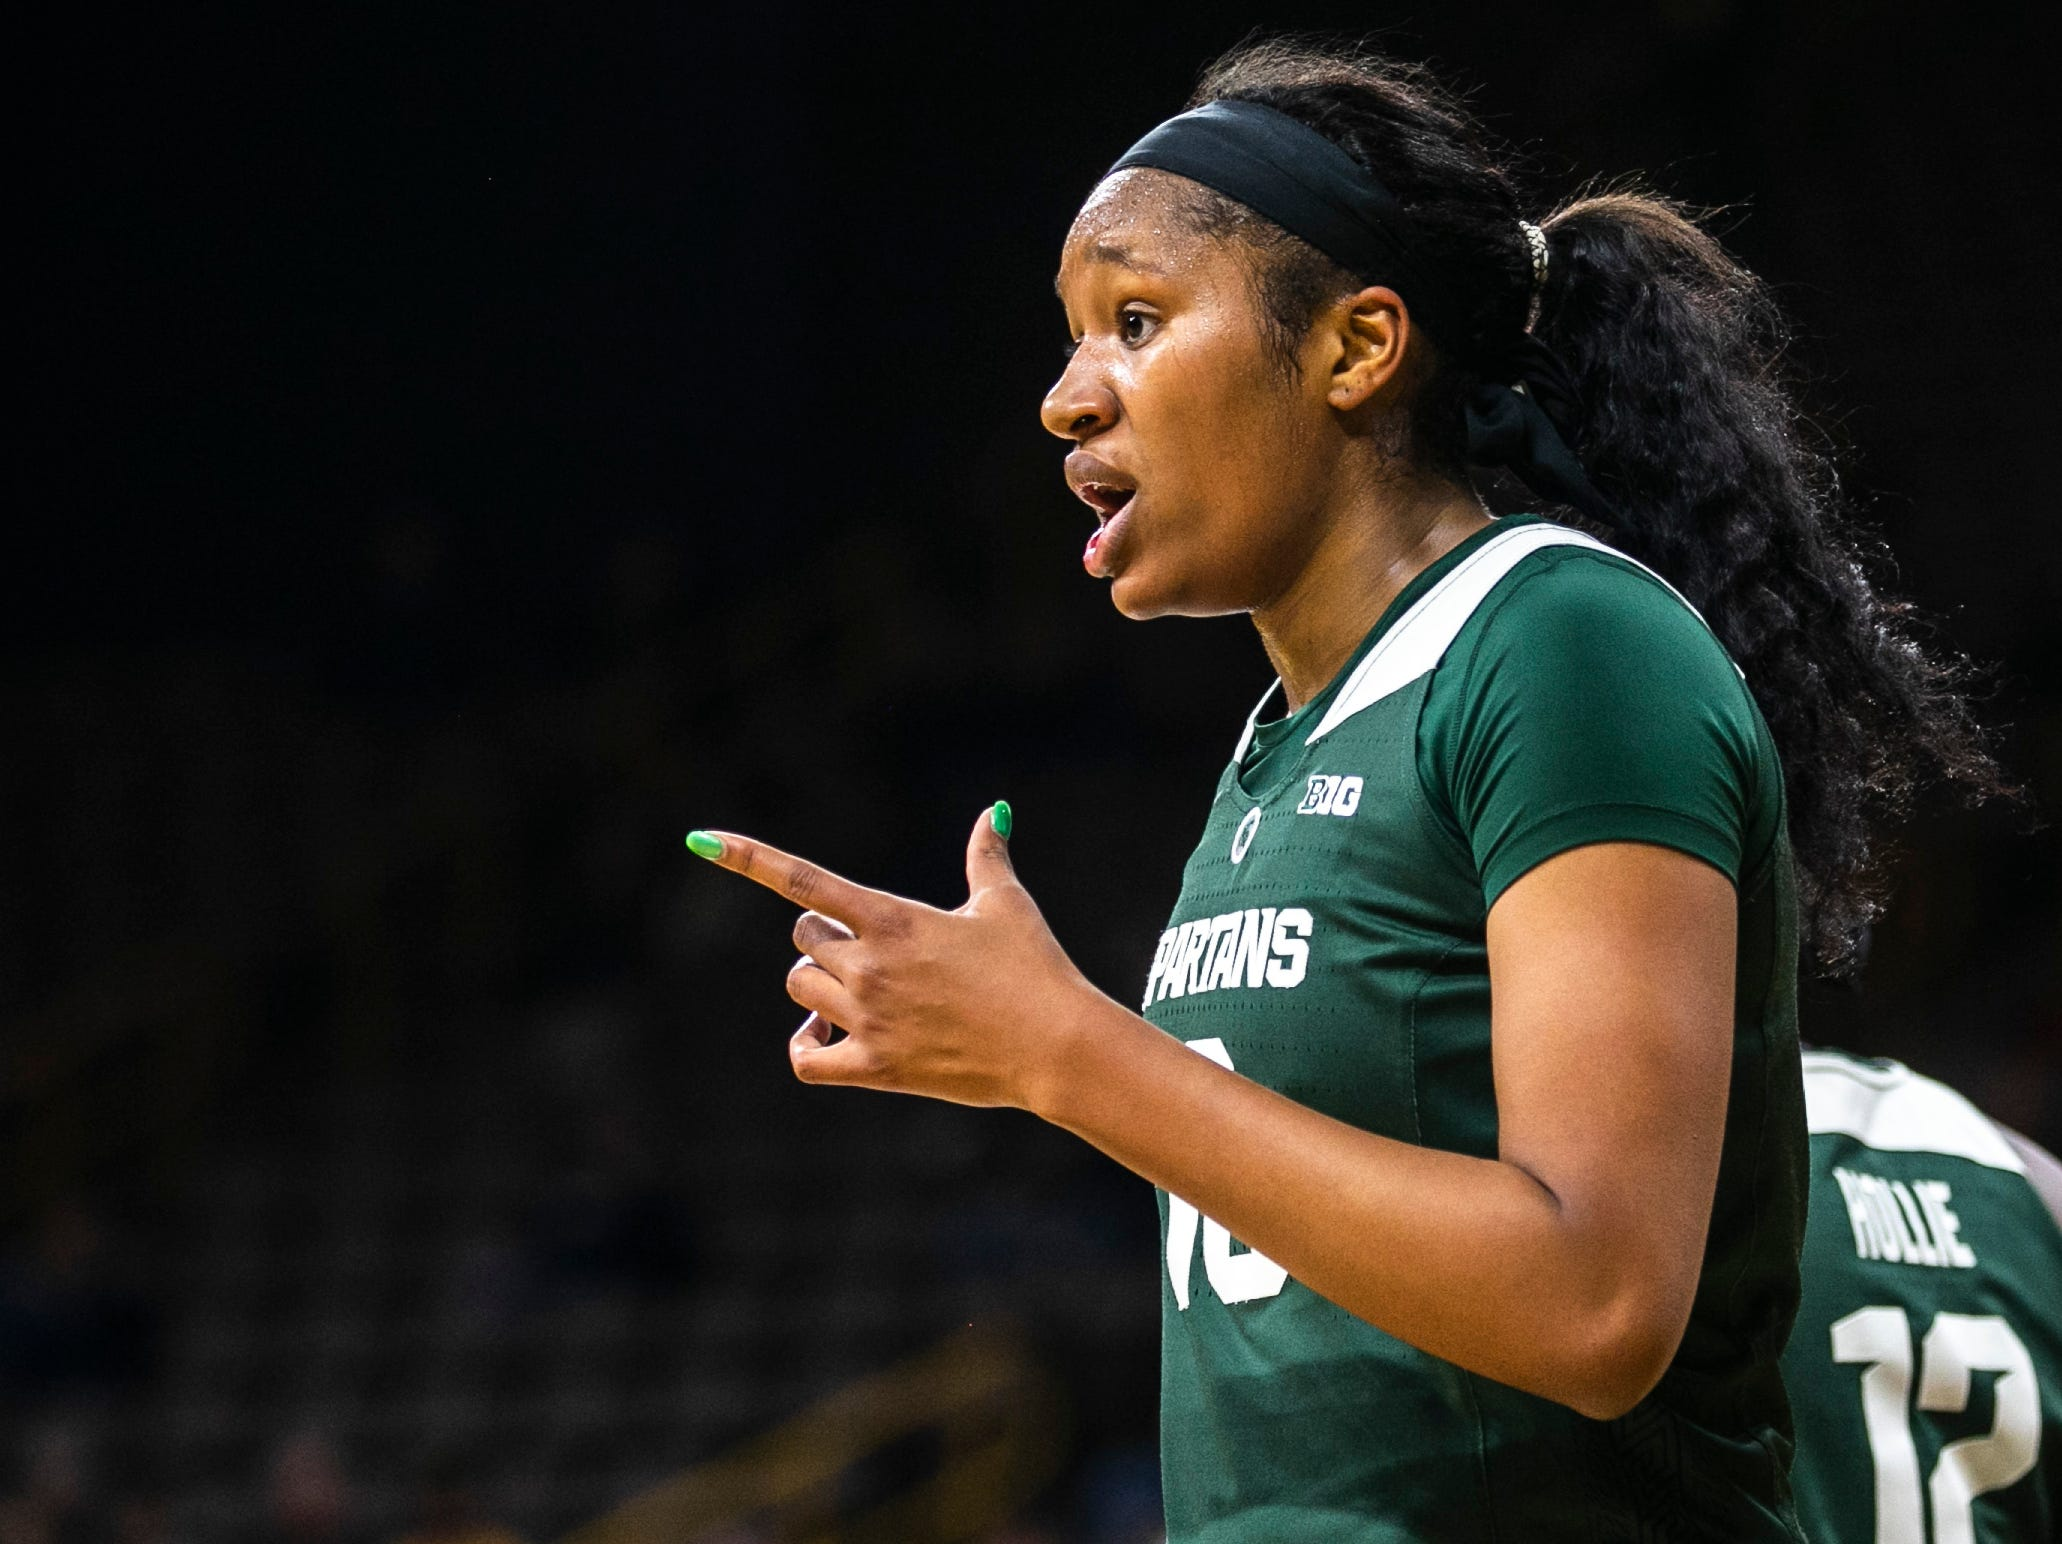 Michigan State forward Sidney Cooks (10) looks to the bench during a NCAA Big Ten Conference women's basketball game on Thursday, Feb. 7, 2019 at Carver-Hawkeye Arena in Iowa City, Iowa.